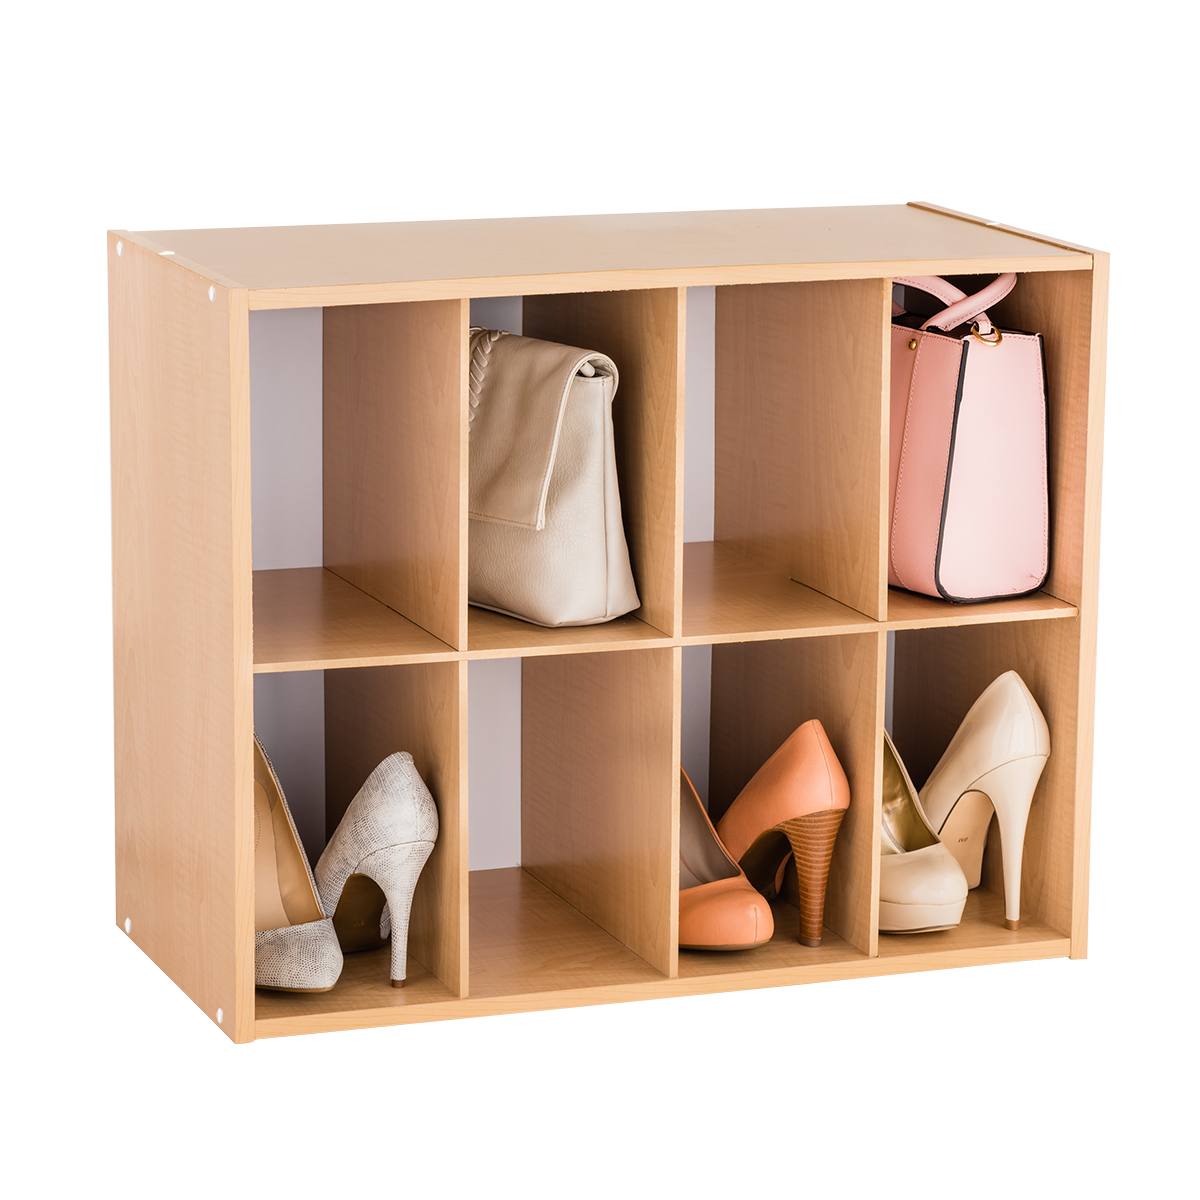 Natural 8-Pair Shoe & Purse Organizer